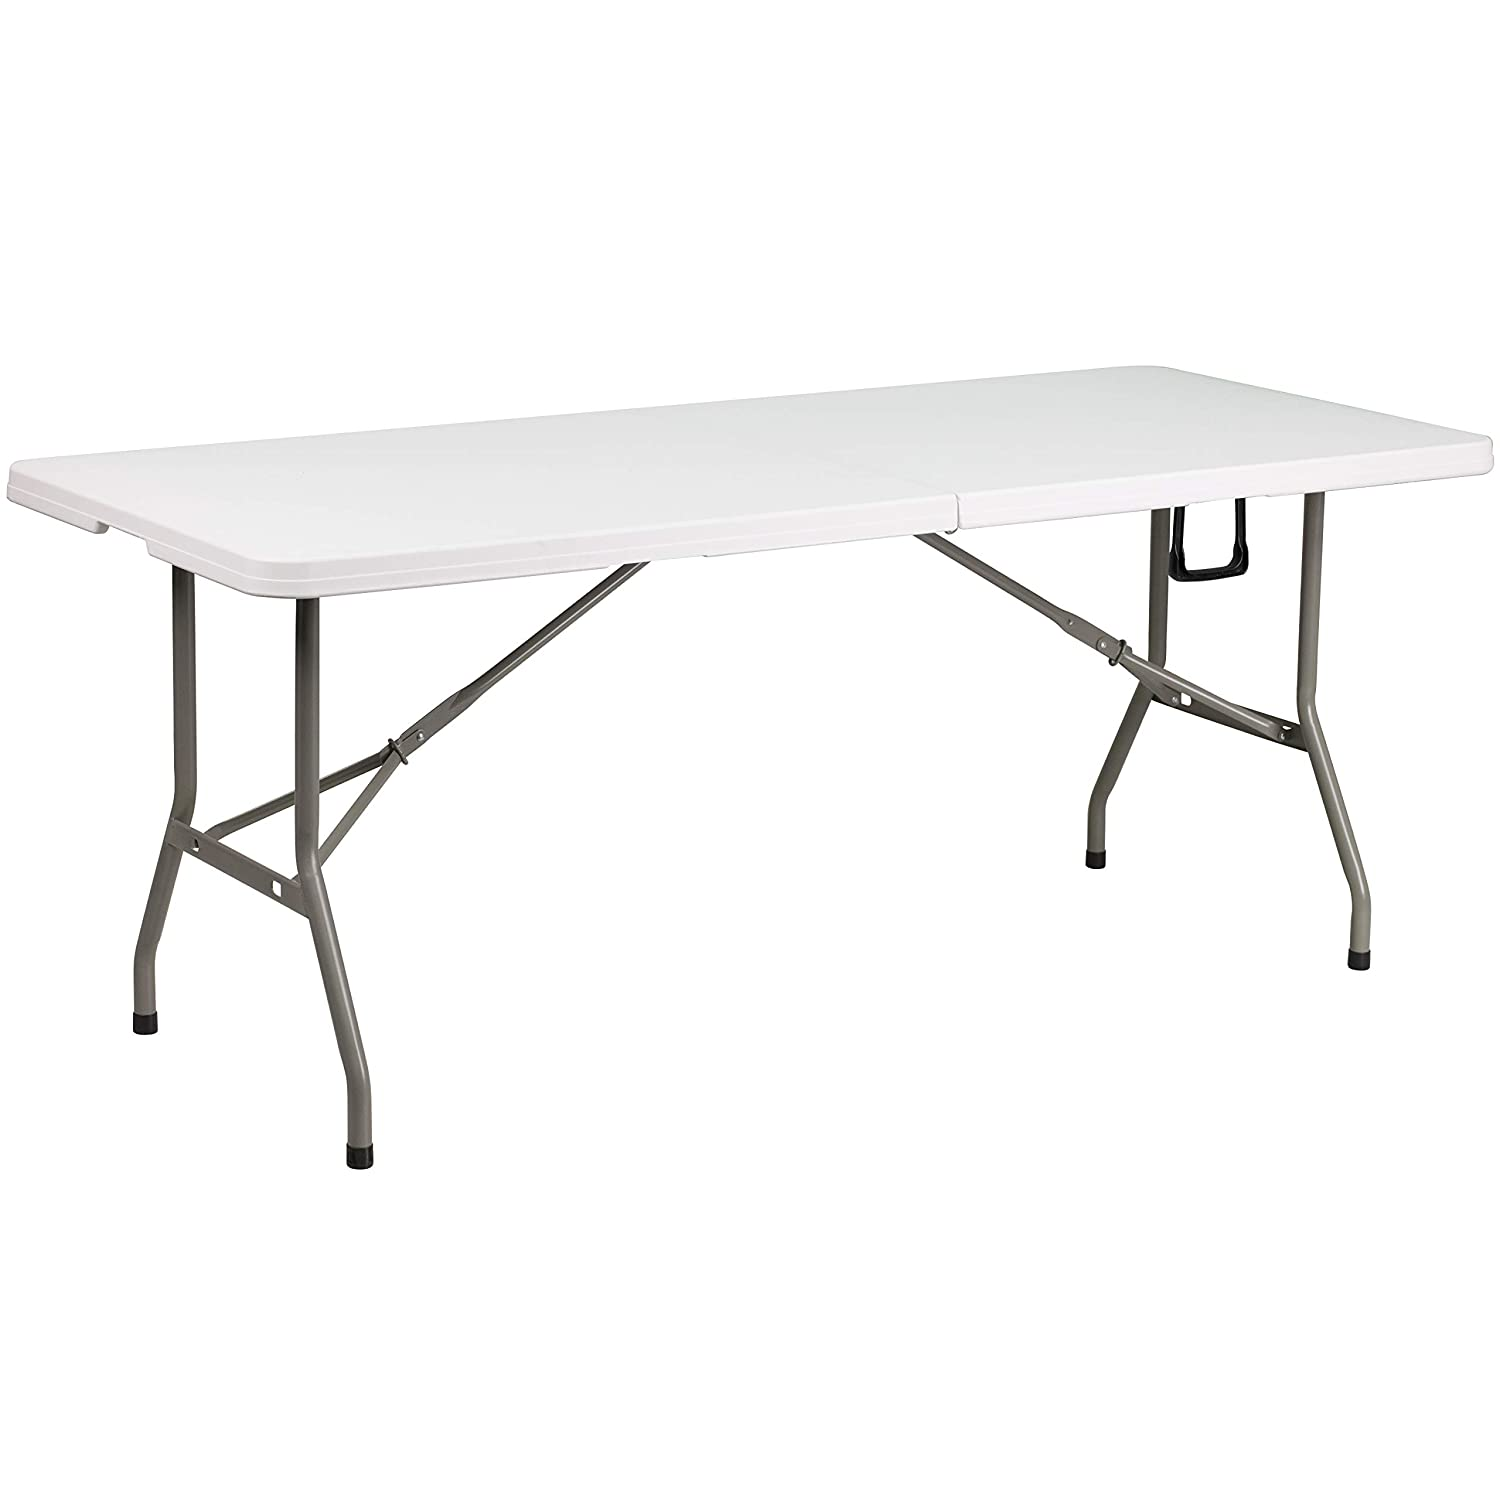 Flash Furniture 6-Foot Bi-Fold Granite White Plastic Banquet and Event Folding Table with Carrying Handle , 30 by 72 – DAD-YCZ-183Z-GG